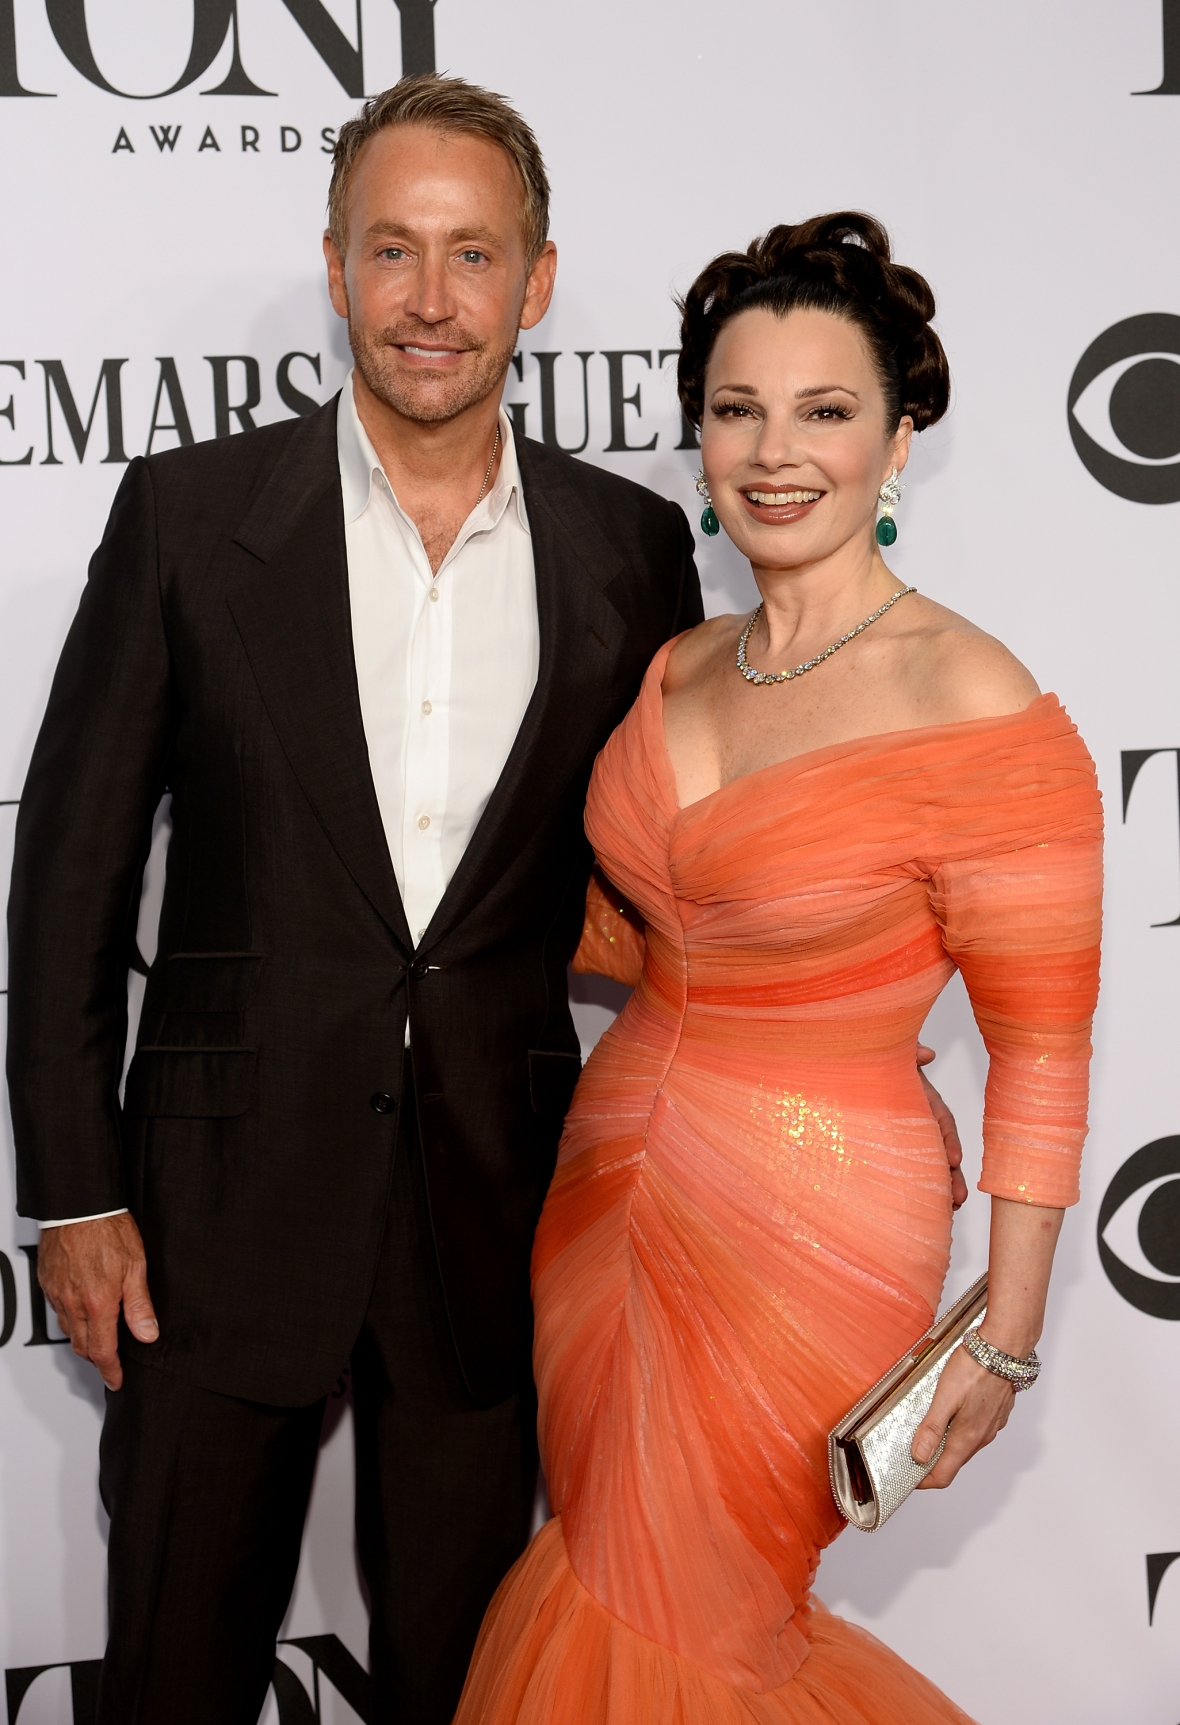 fran drescher getty images